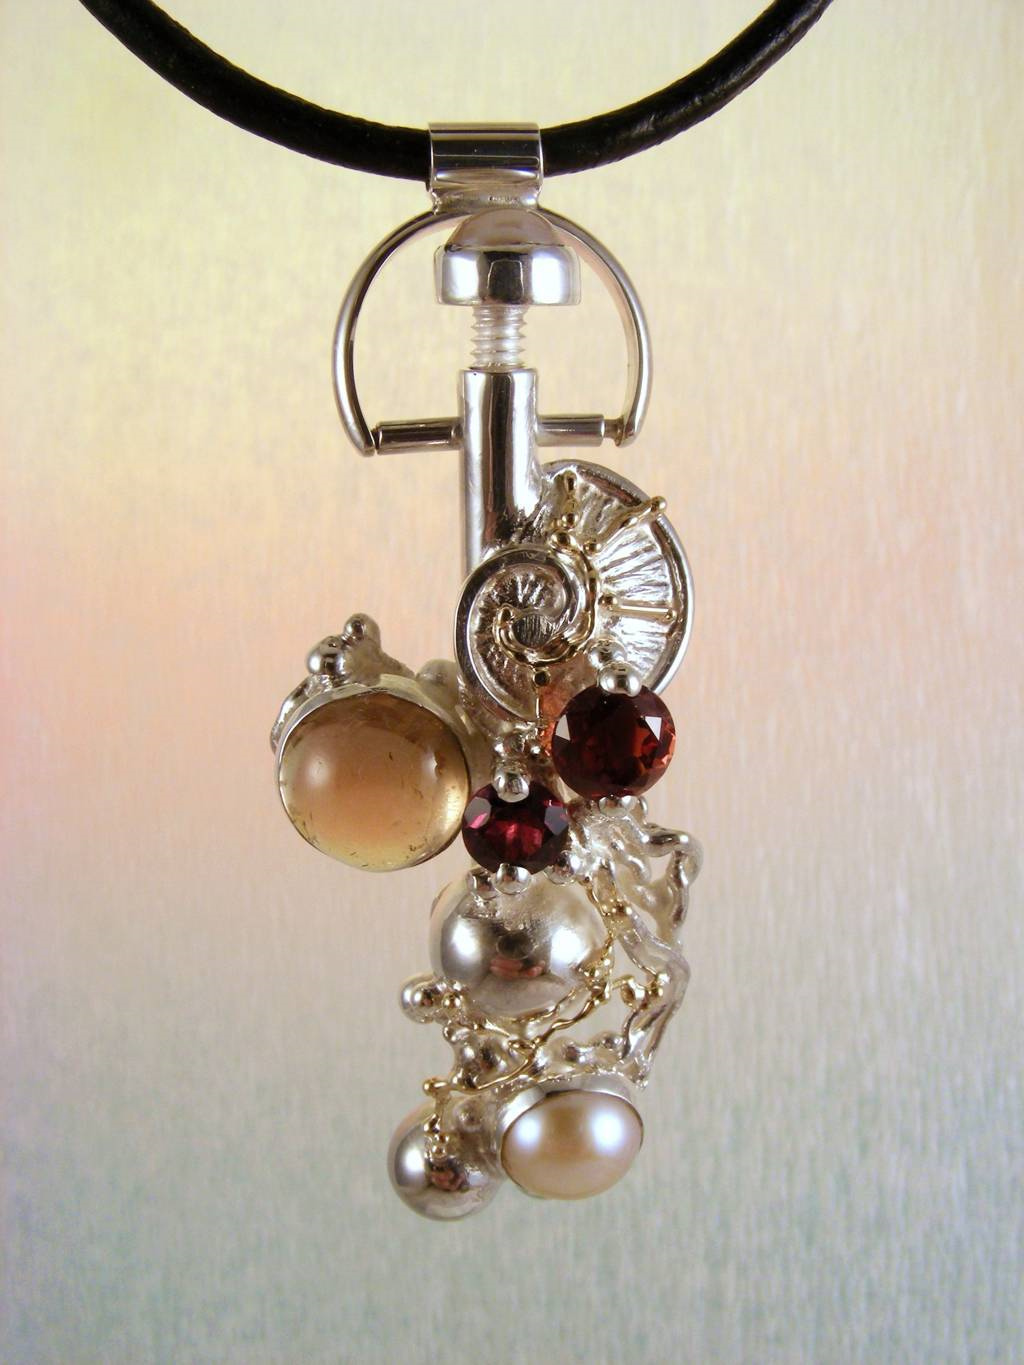 Perfume Bottle Pendant with Tourmaline 8930, Original Handcrafted, Sterling Silver and Gold, Pink Tourmaline, Garnet, Rhodolite, Pearls